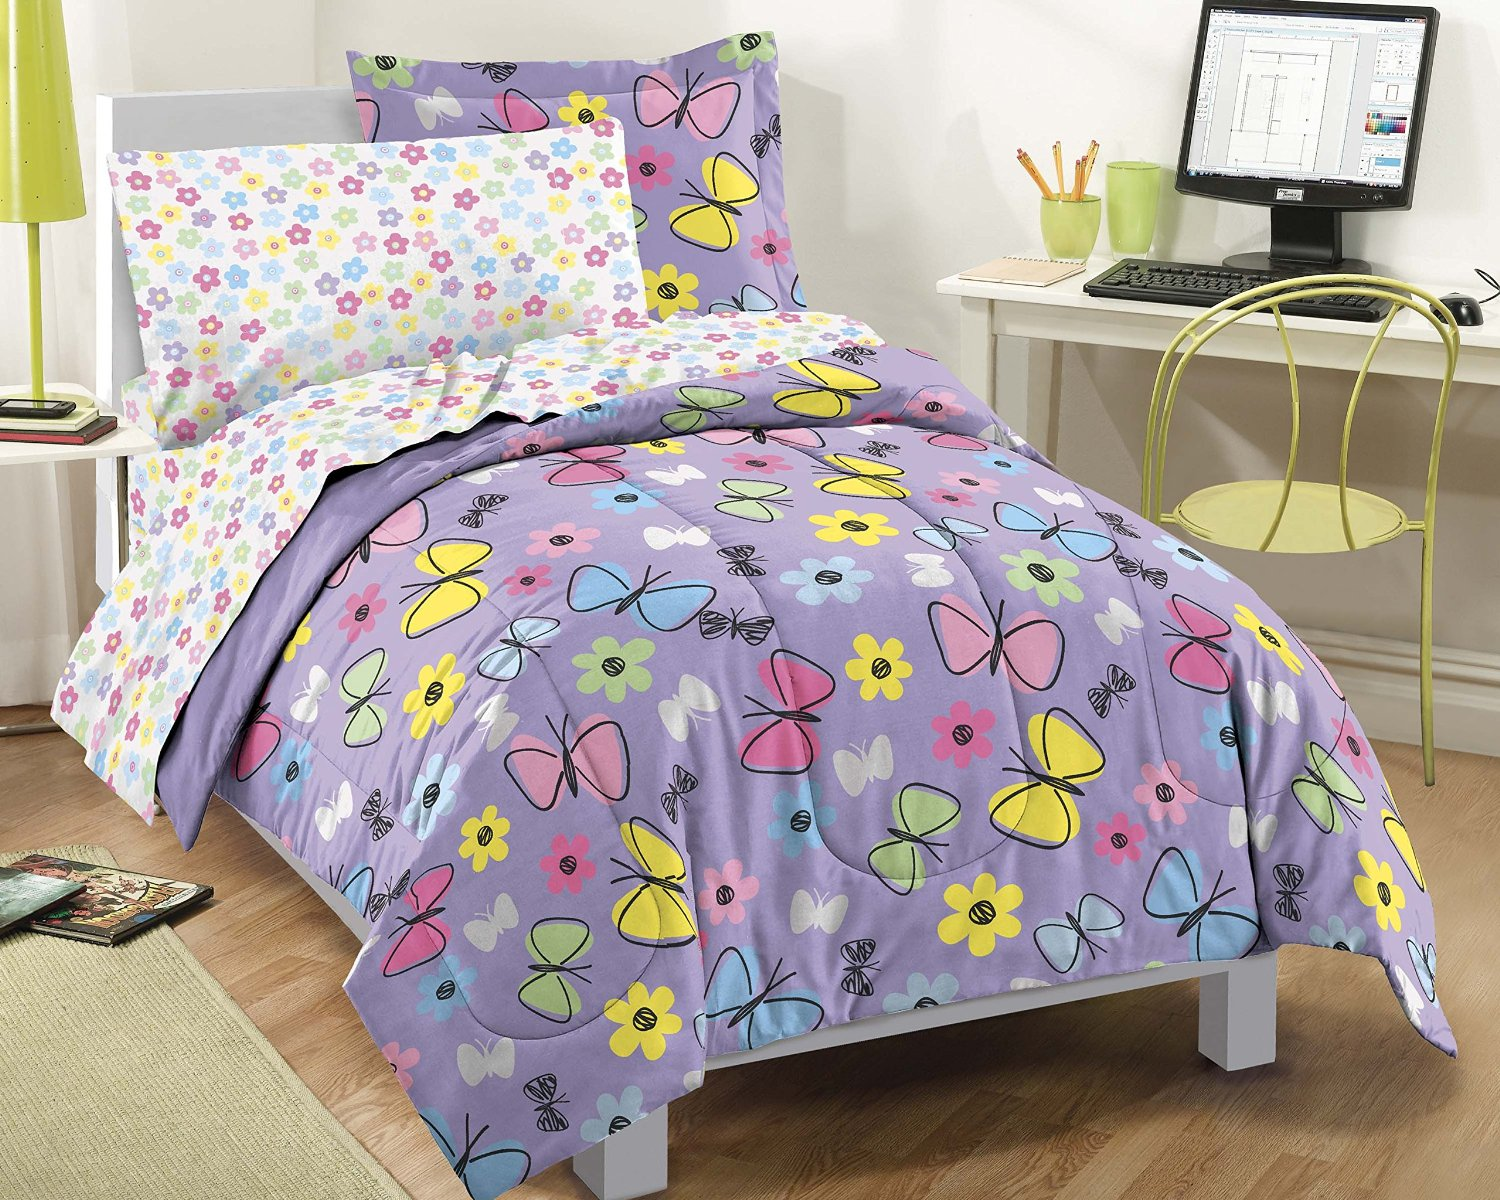 etc bird set comforter and silo collections of by king multicolored abigail rose p picture butterfly